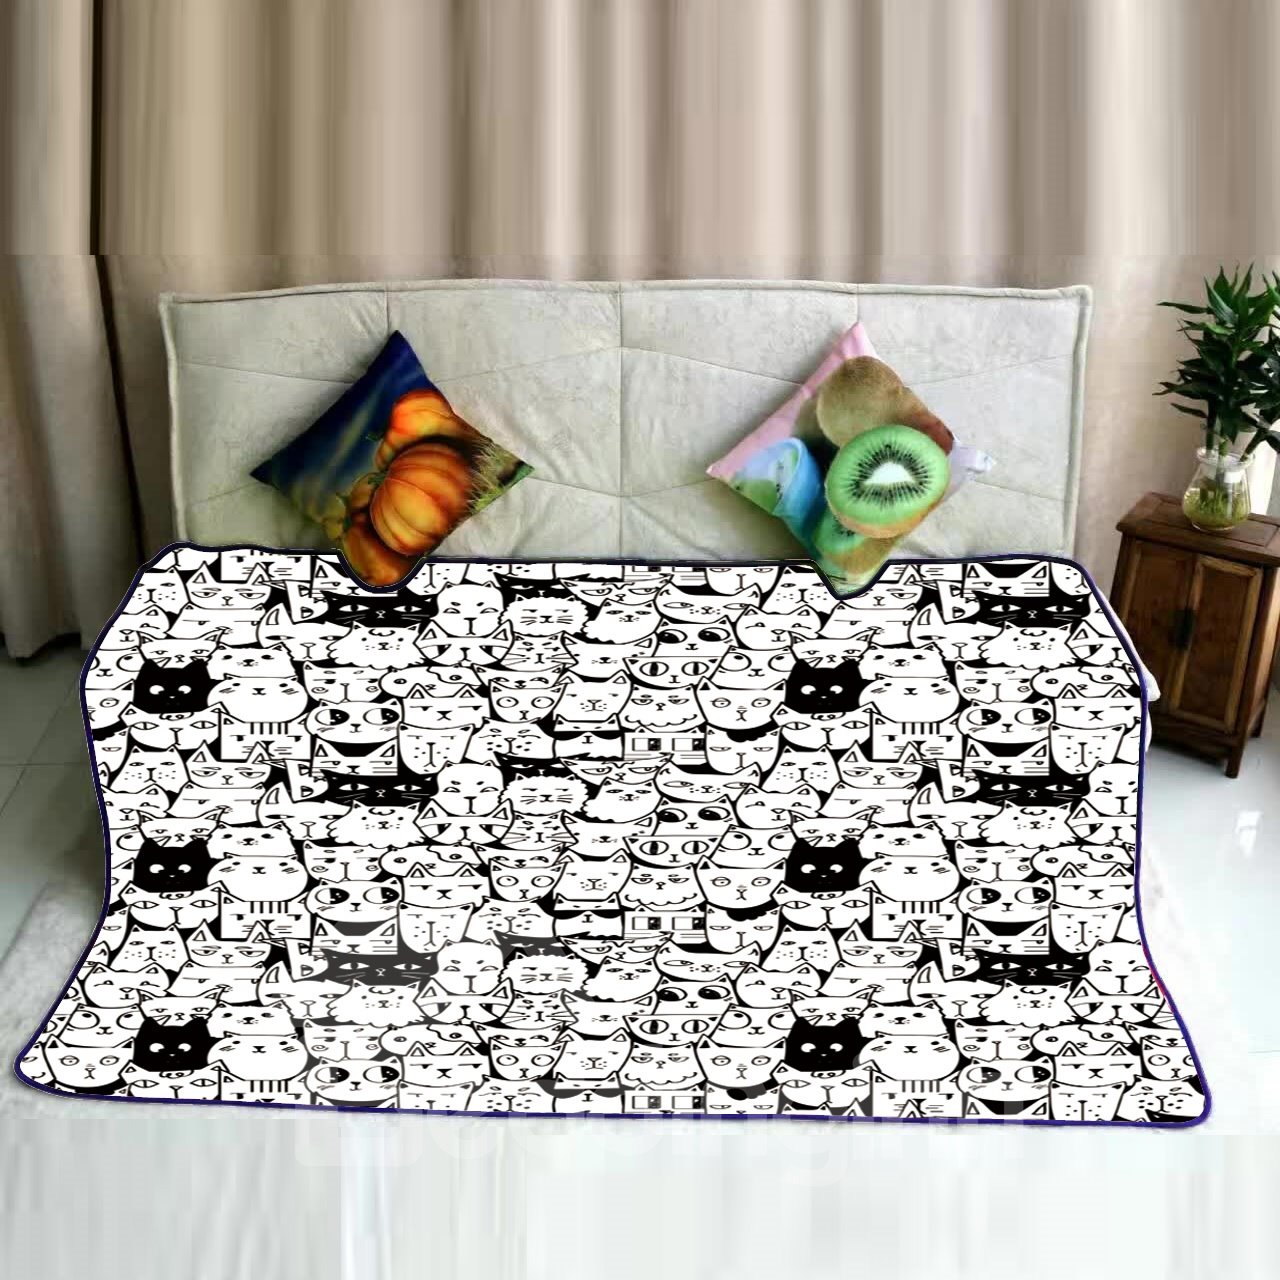 Cats Face Dotted Printed Super Soft Flannel Bed Blankets